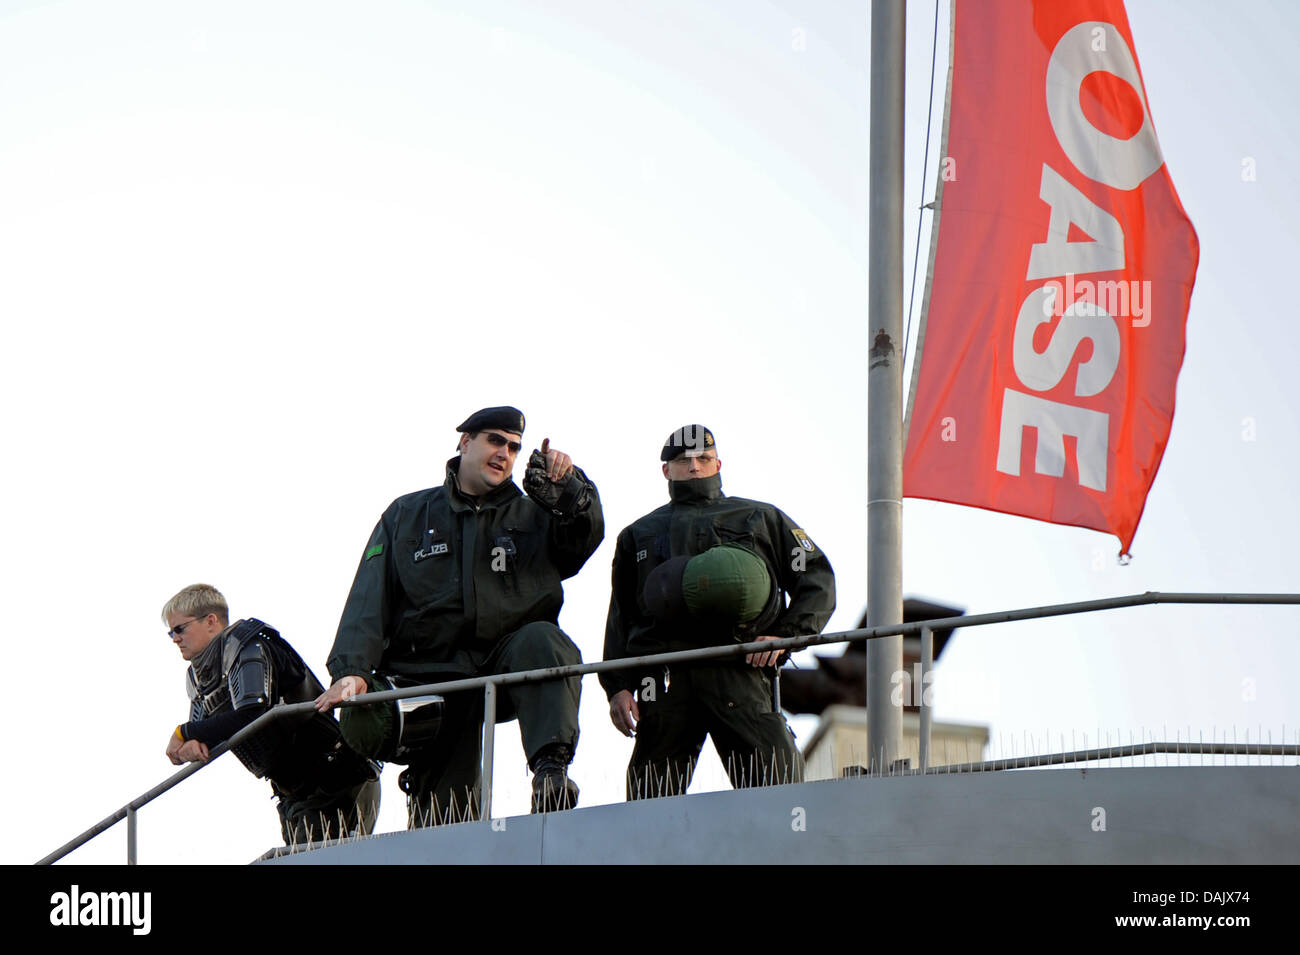 Police officers stand at the roof of an office building at the revolutionary May Day demonstration in Berlin, Germany, - Stock Image